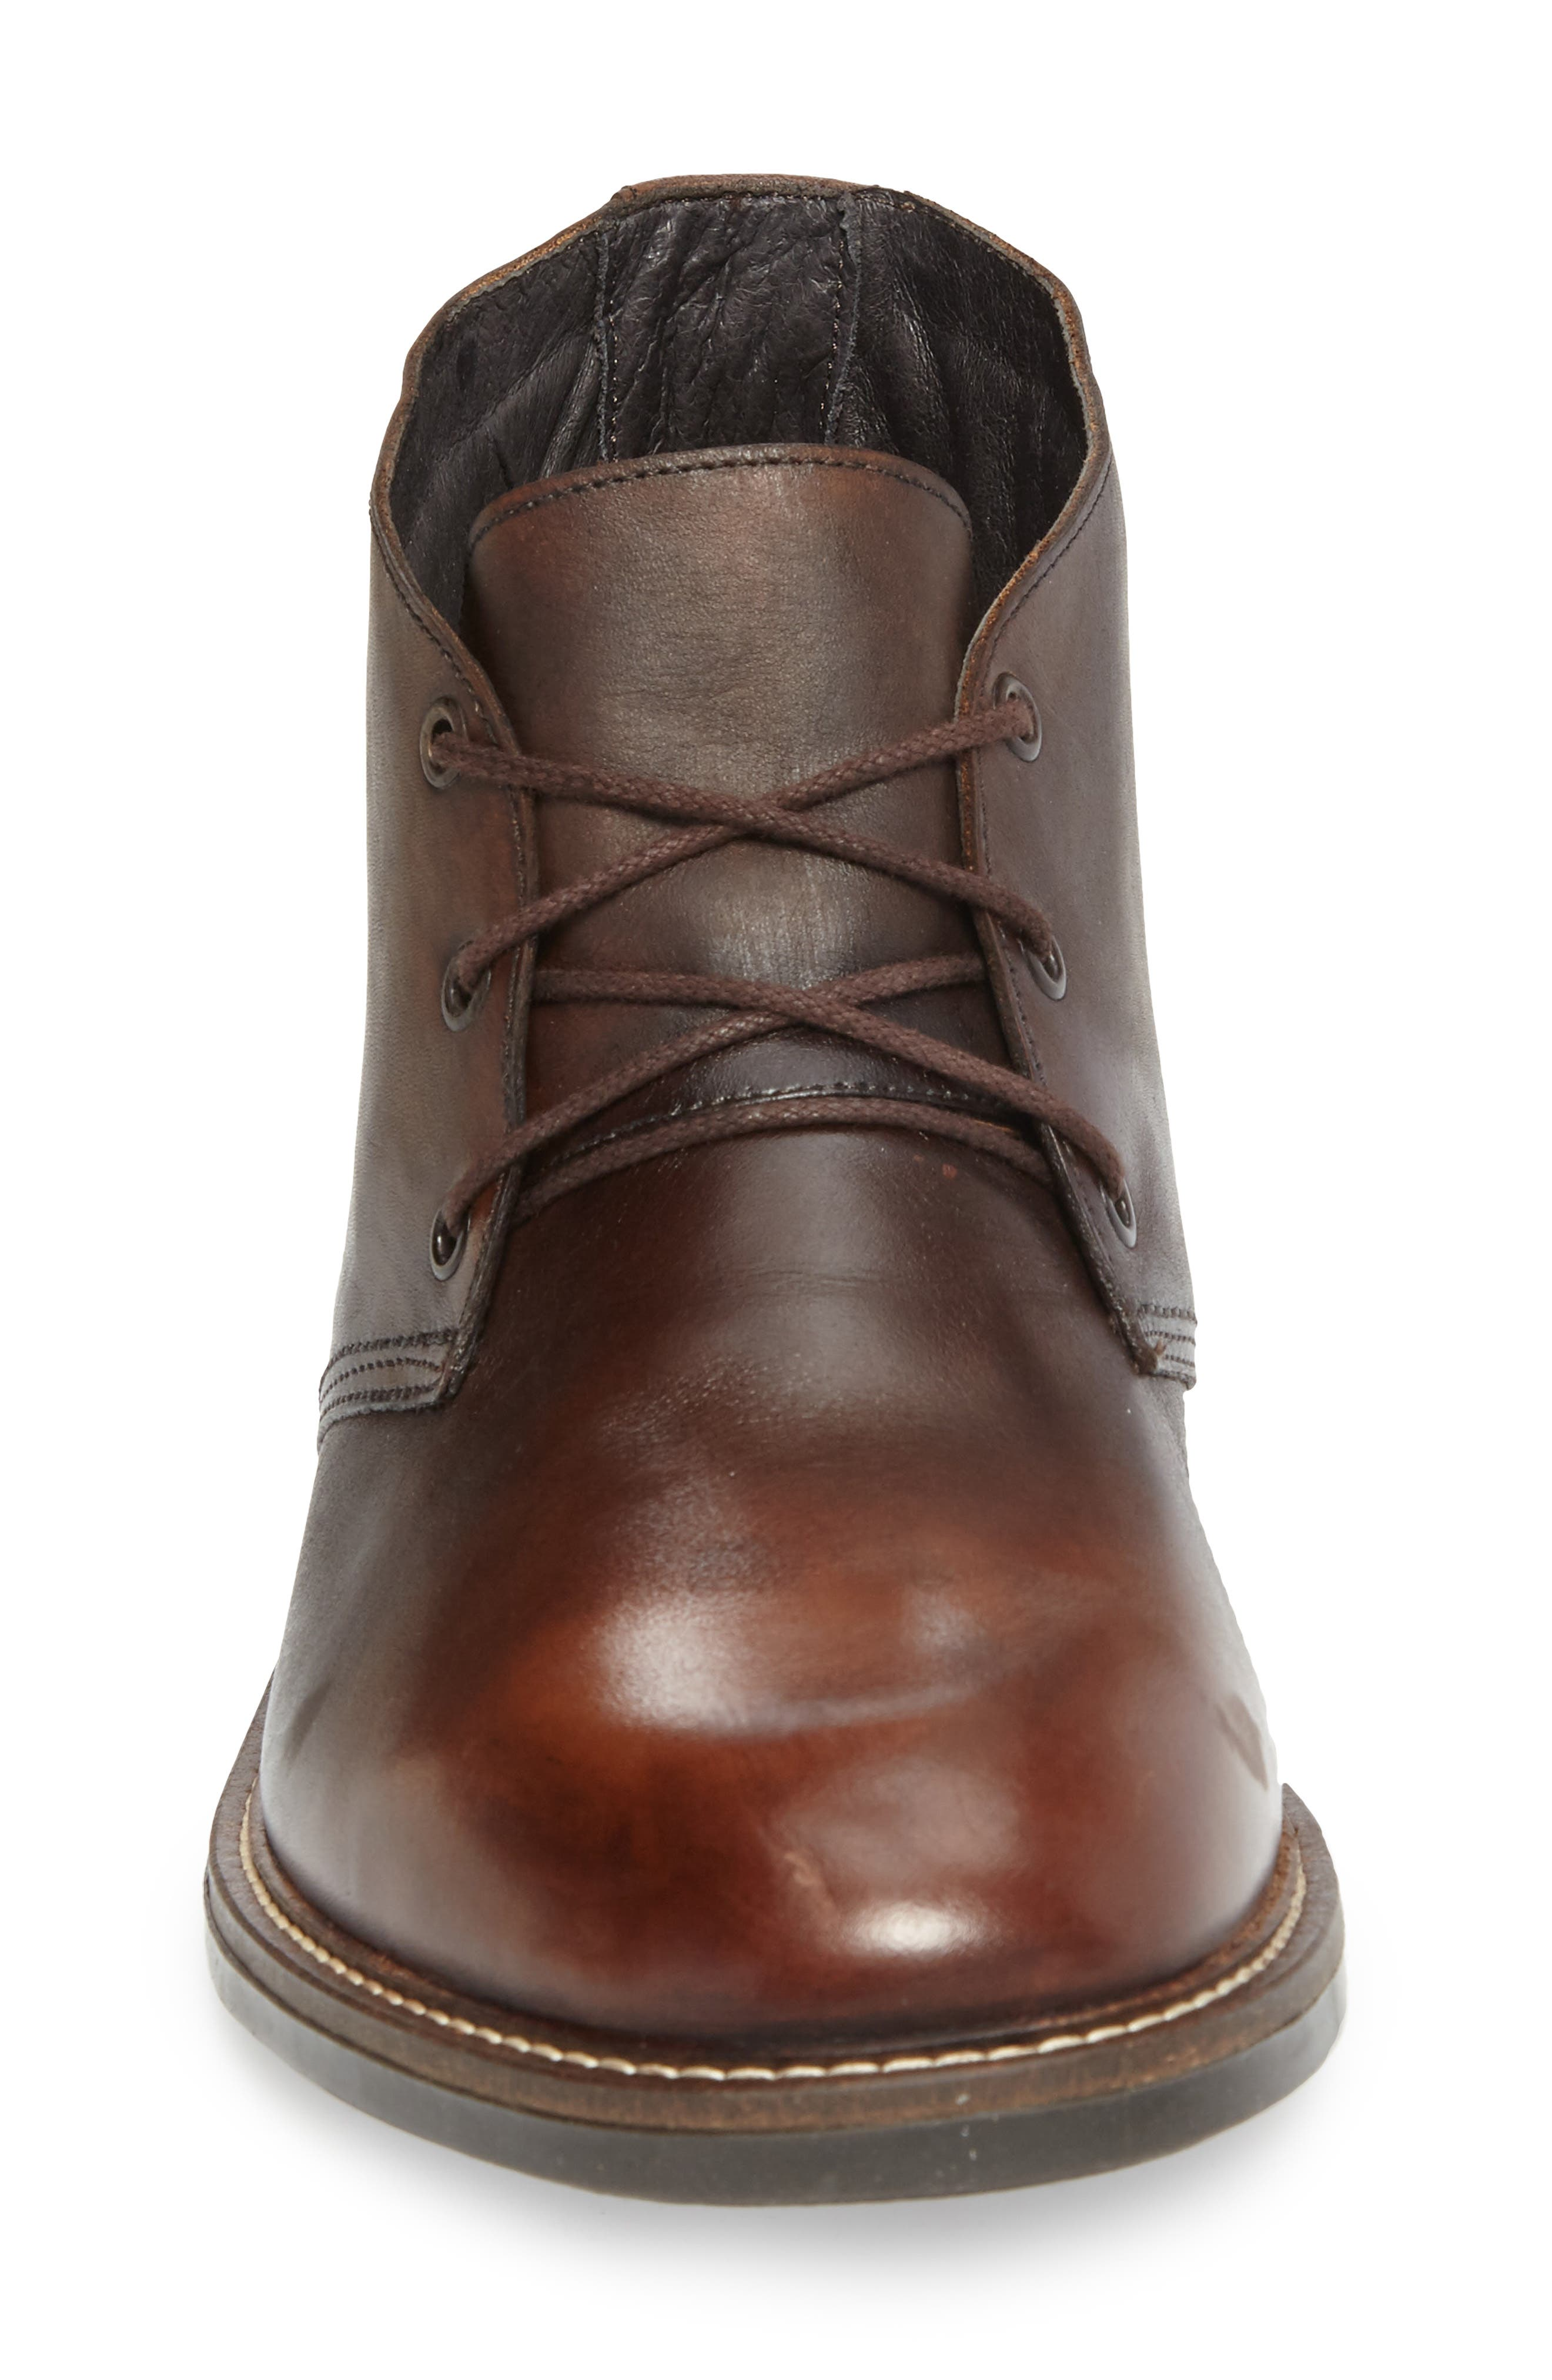 Pilot Chukka Boot,                             Alternate thumbnail 3, color,                             Brown Gradient Leather